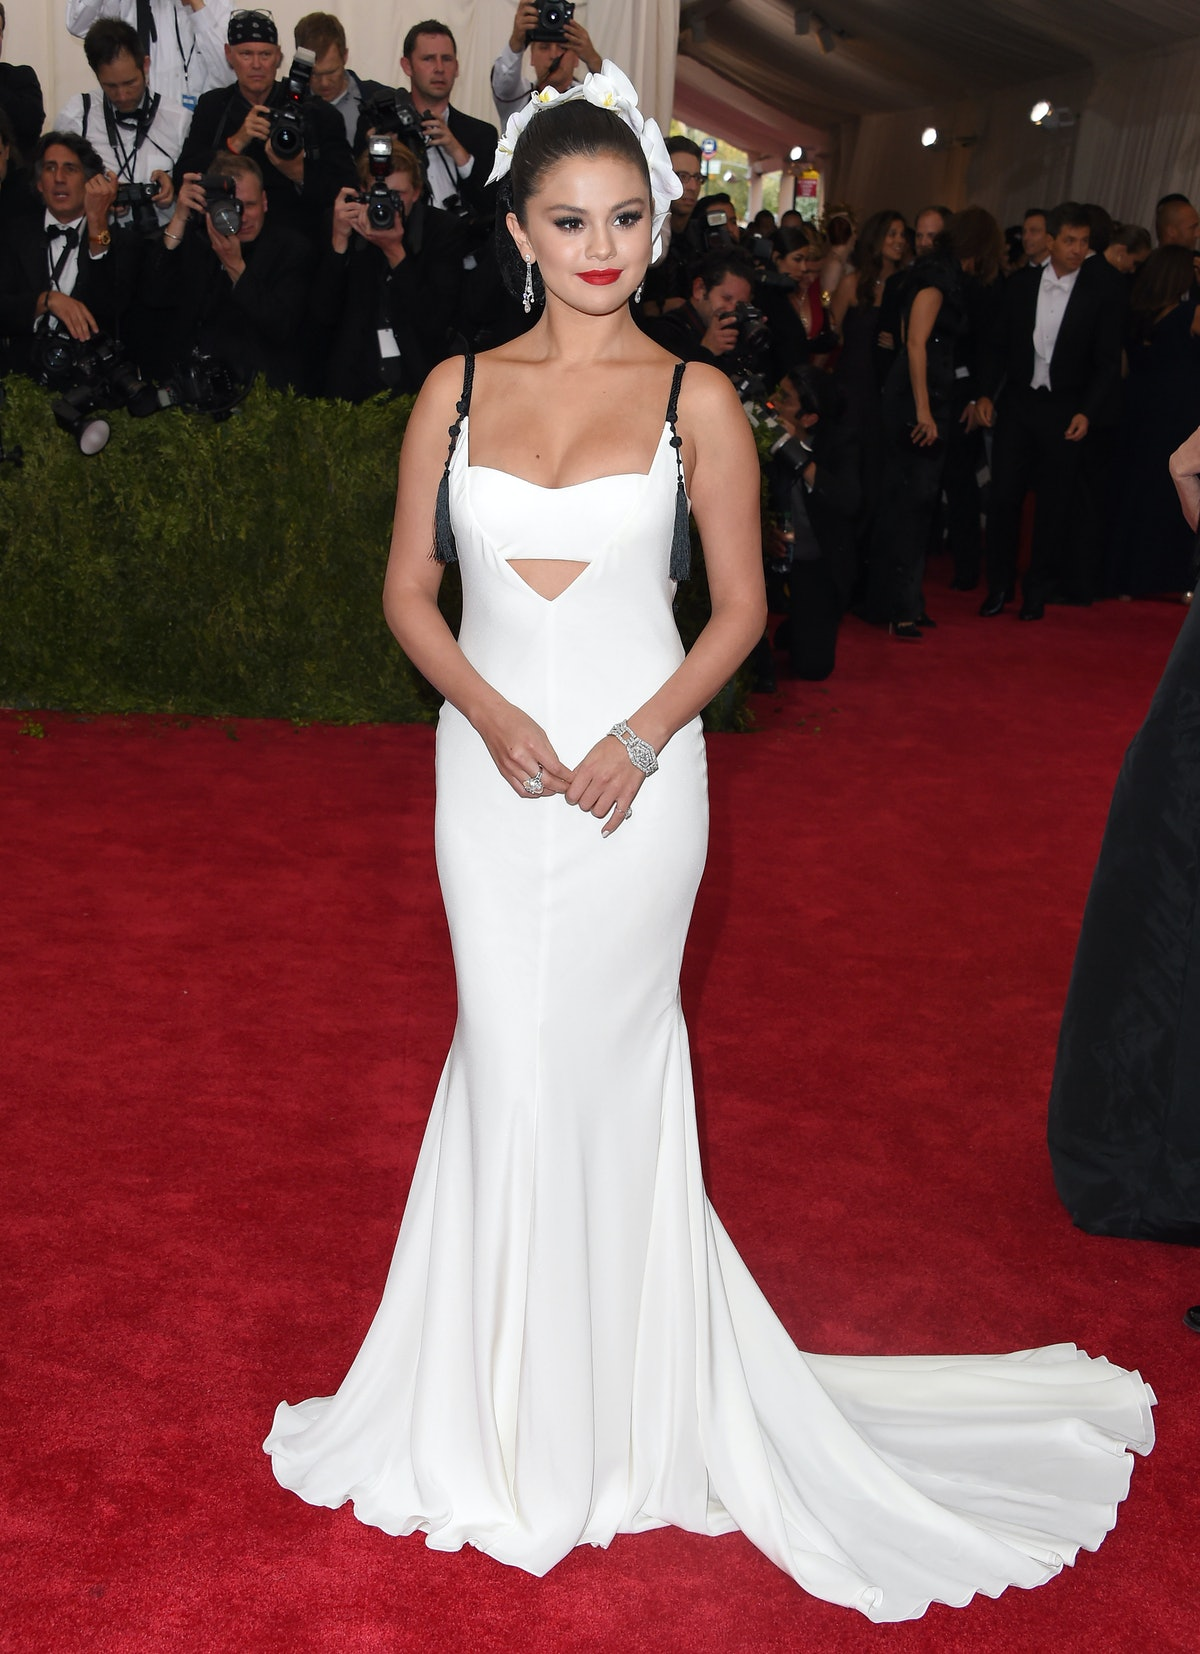 Selena Gomez attends the 'China: Through The Looking Glass' Costume Institute Benefit Gala at the Metropolitan Museum of Art on May 4, 2015 in New York City.  (Photo by Axelle/Bauer-Griffin/FilmMagic)